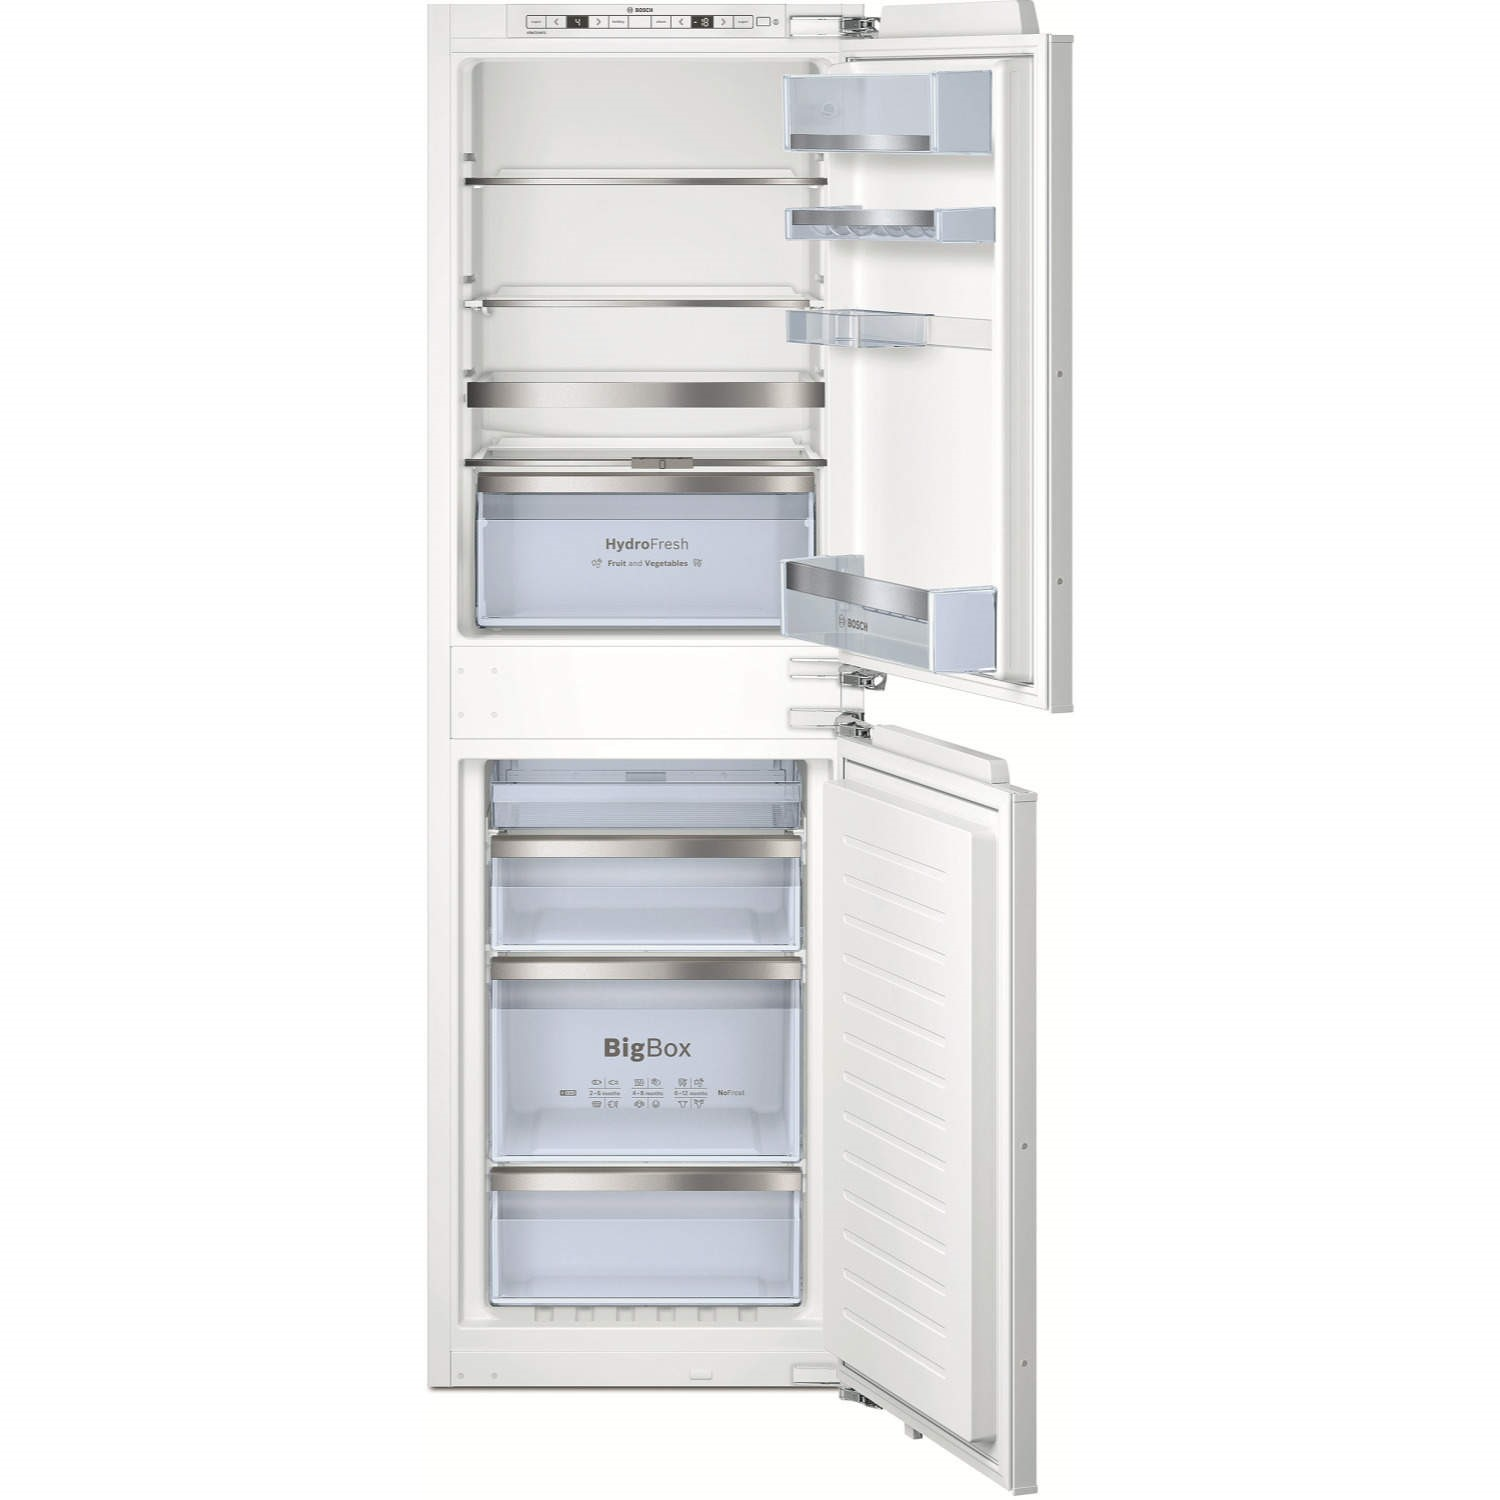 bosch kin85af30g 56cm wide frost free integrated upright fridge freezer white